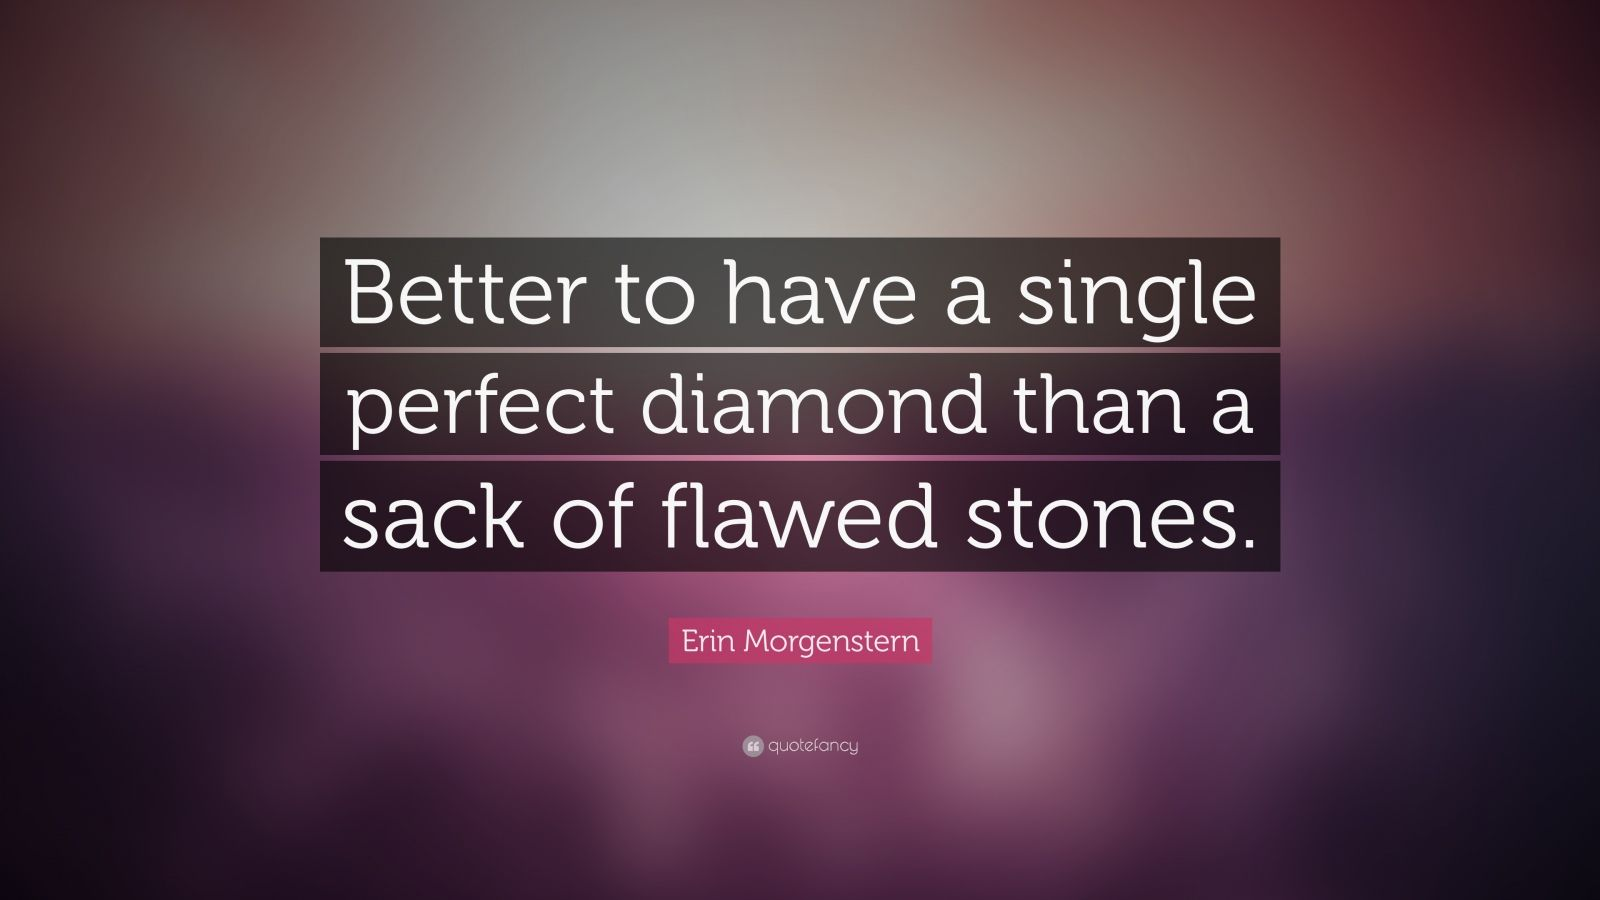 """Erin Morgenstern Quote: """"Better to have a single perfect diamond than a sack of flawed stones."""""""